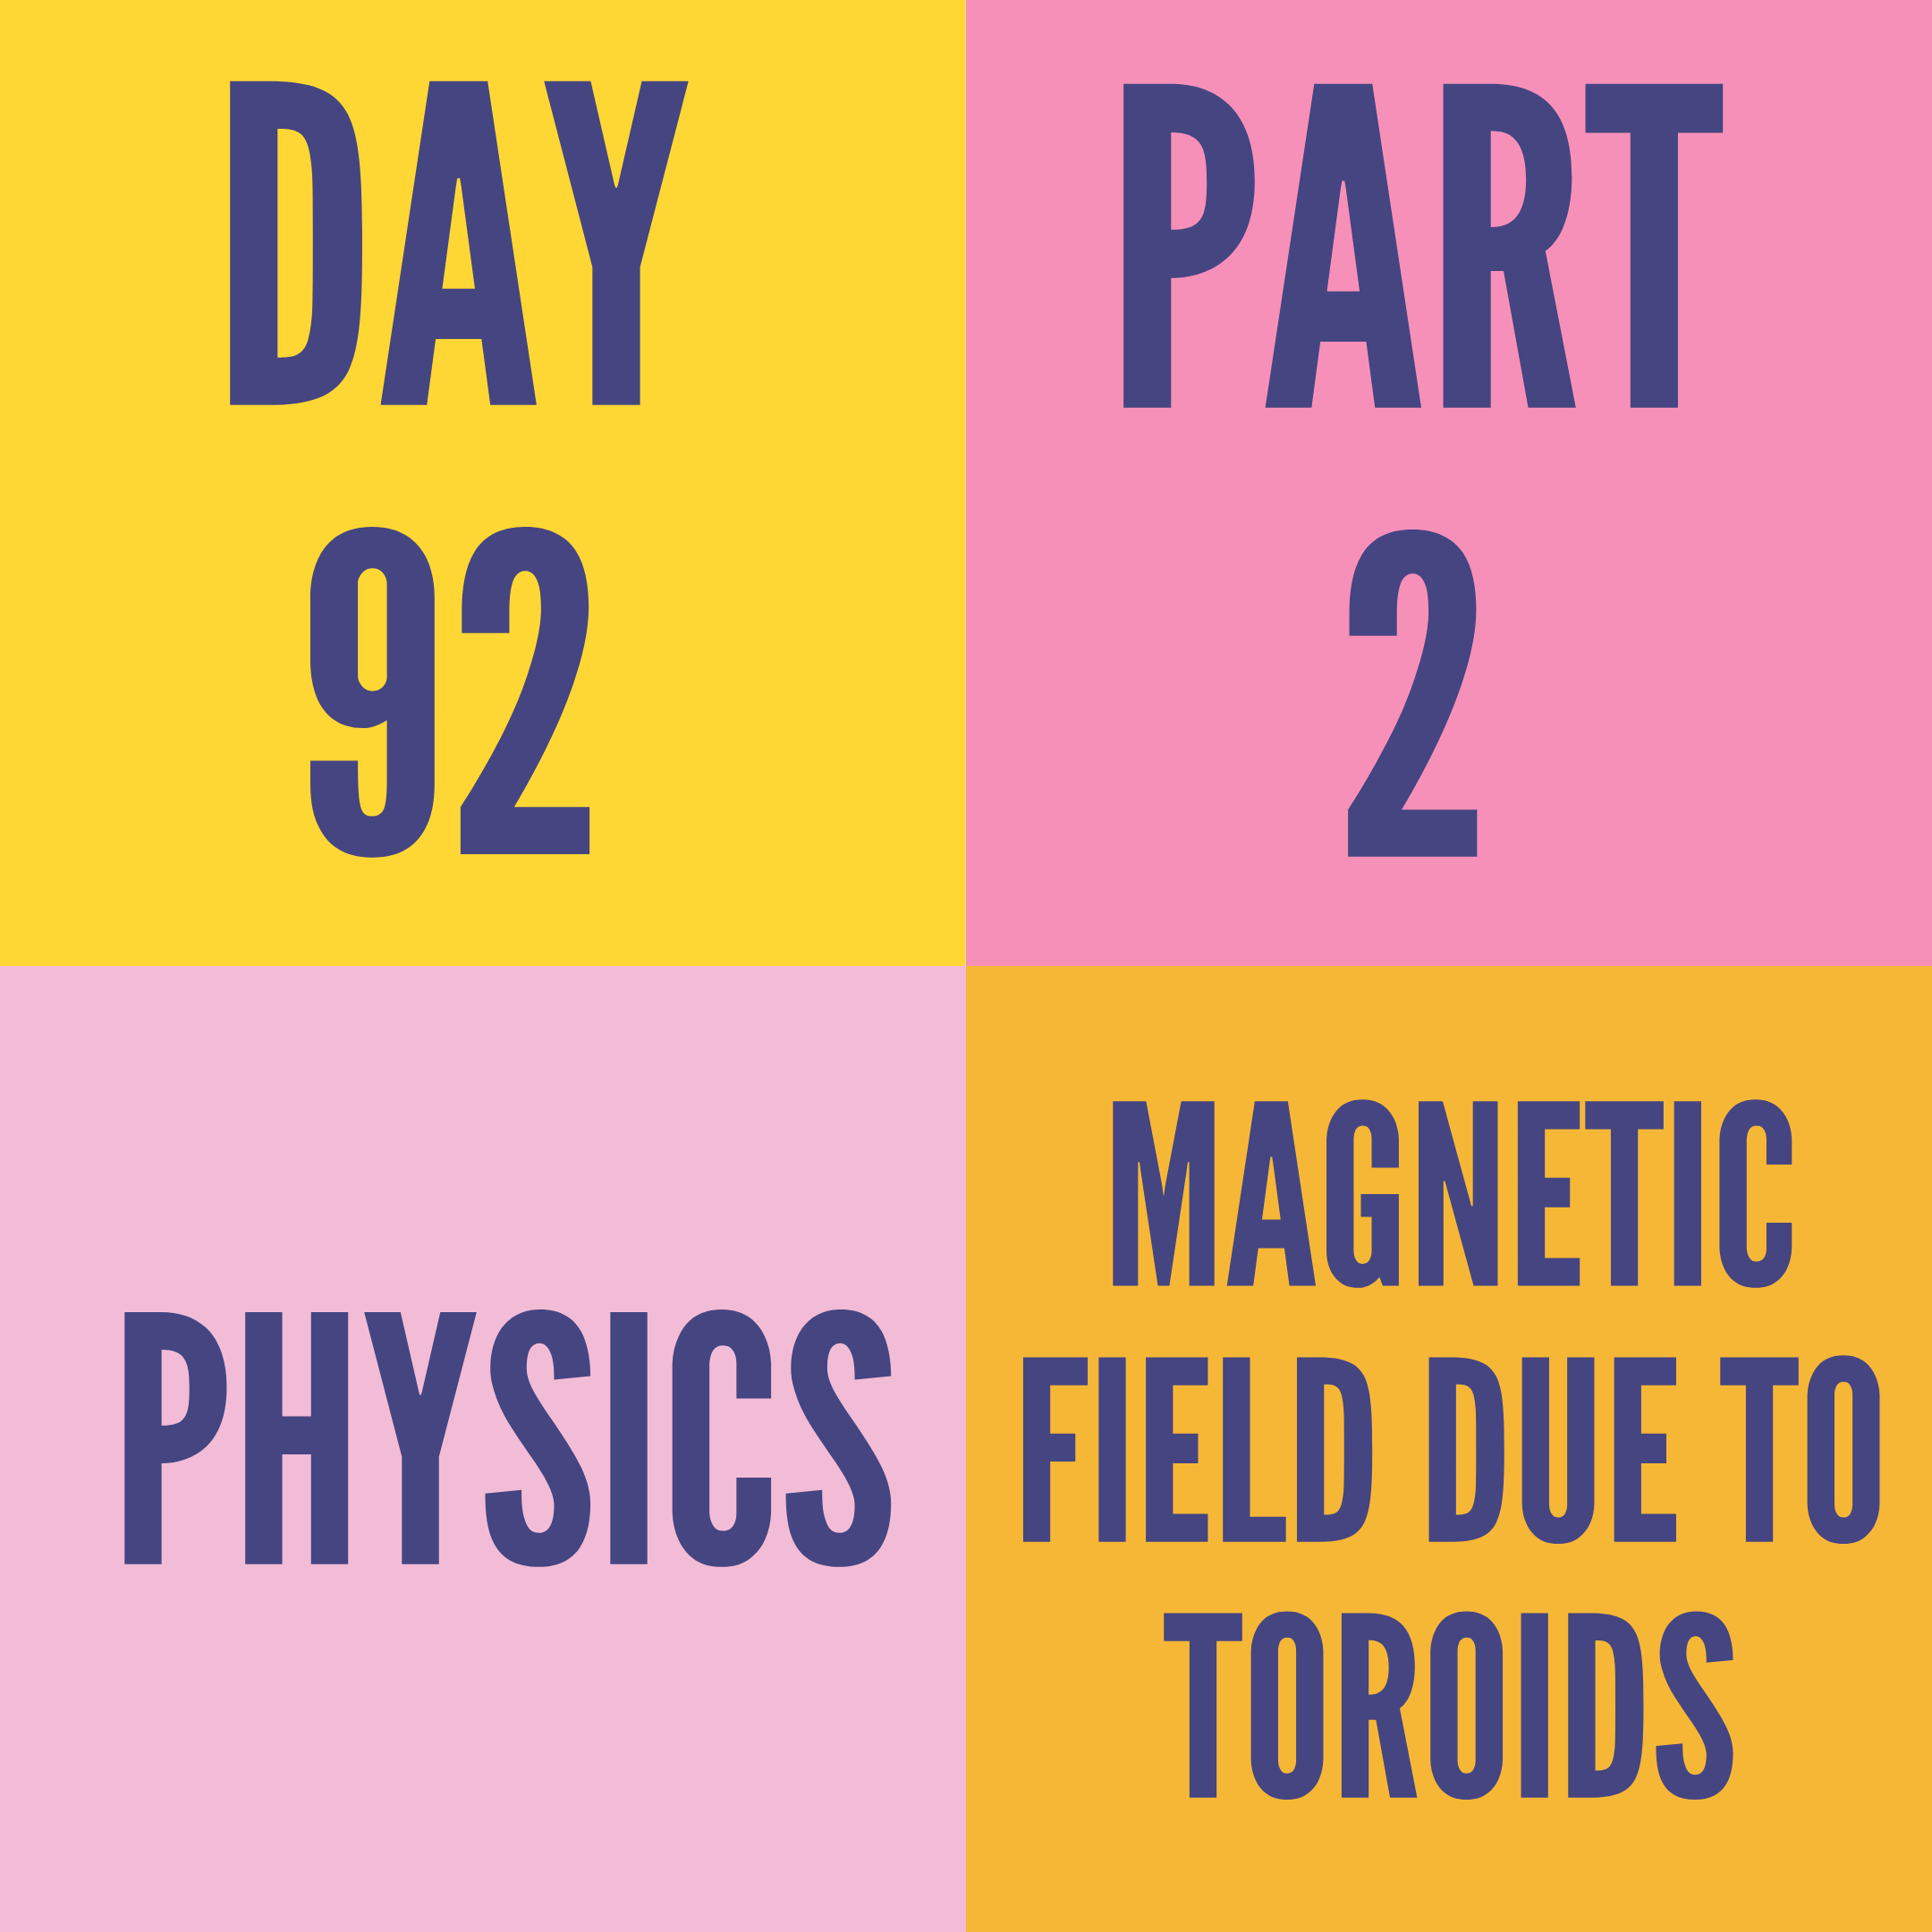 DAY-92 PART-2 MAGNETIC FIELD DUE TO TOROIDS